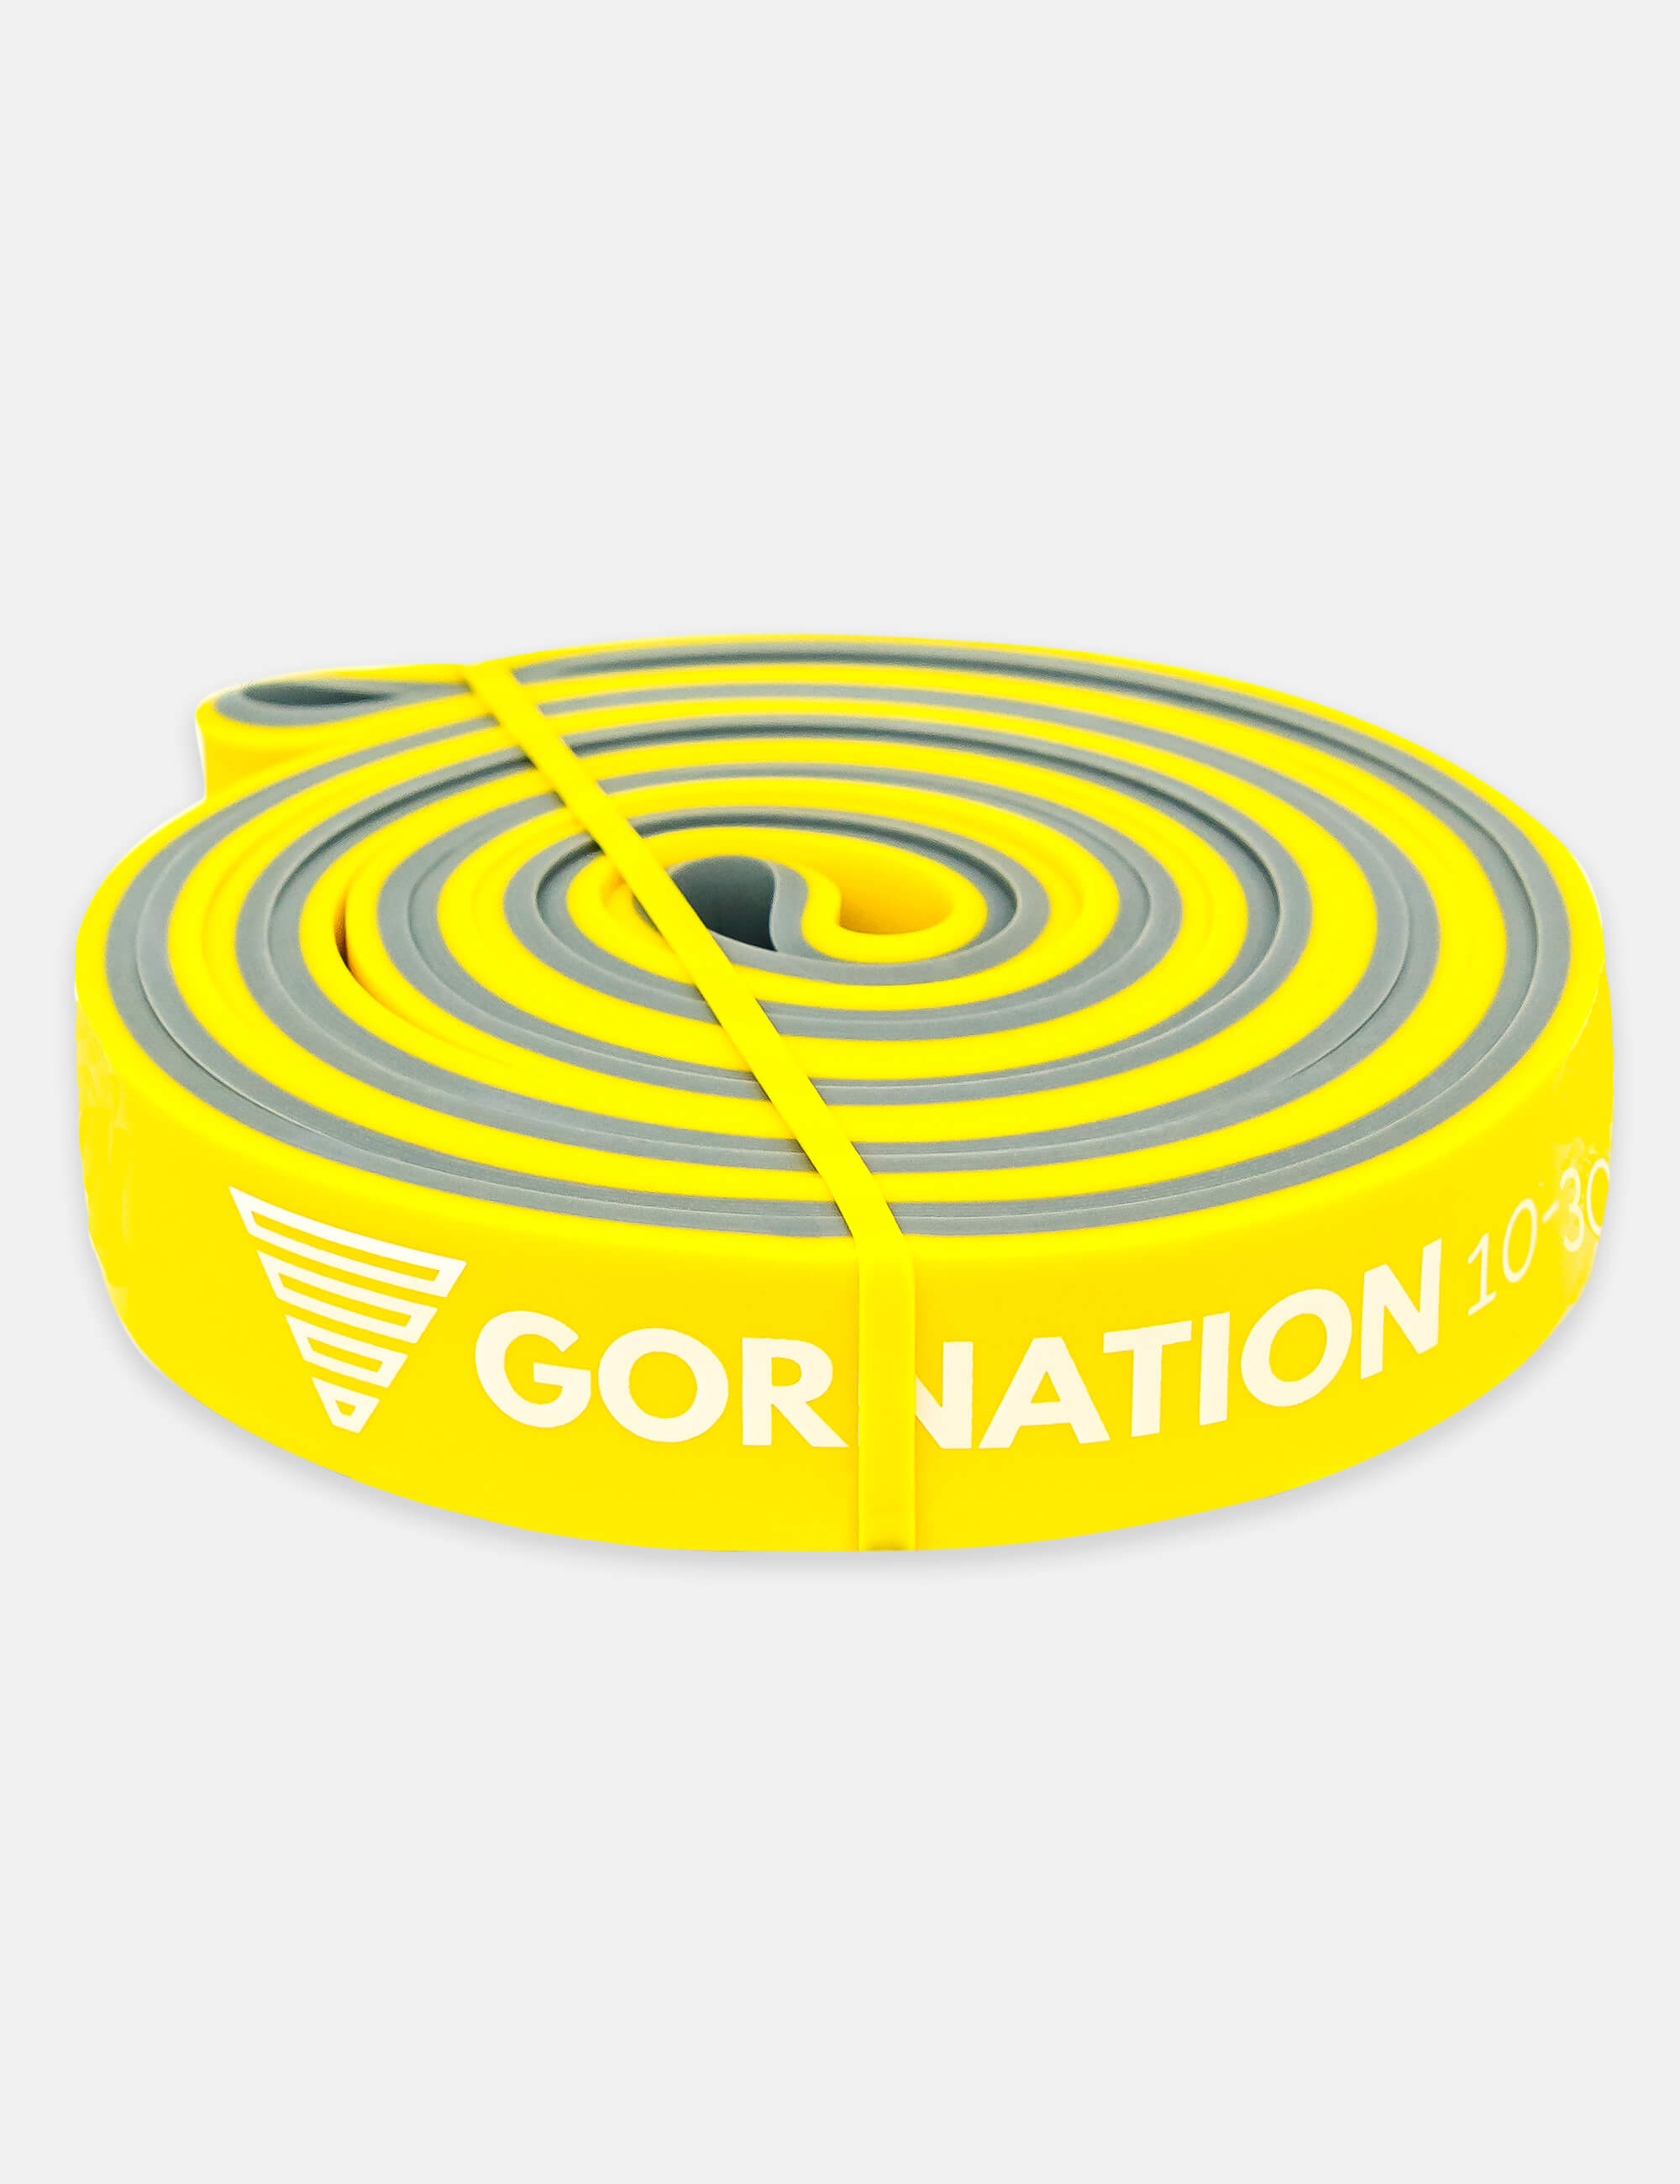 GORNATION Premium Resistance Bands Yellow for Home Workouts, Calisthenics, Crossfit, Gym